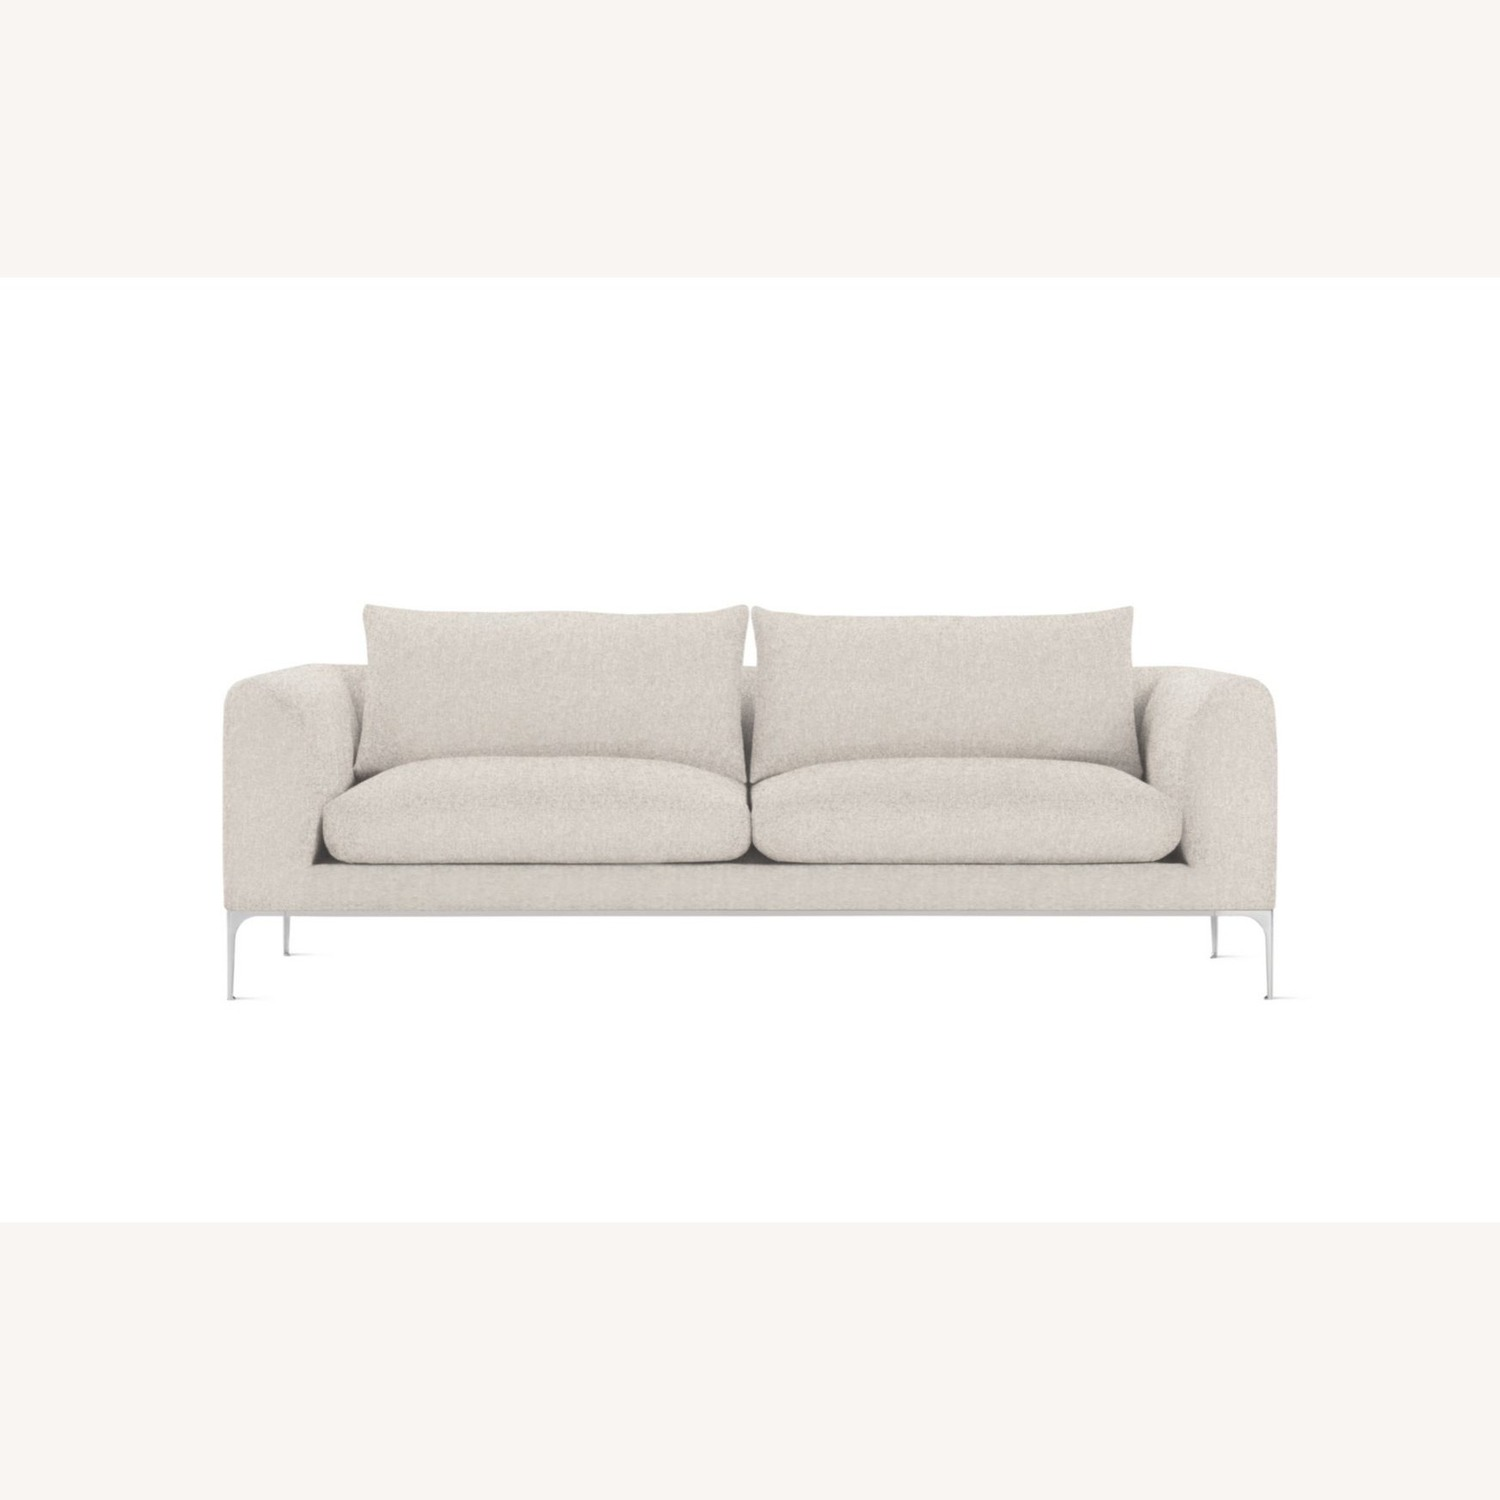 Beautiful DWR Couch - image-1